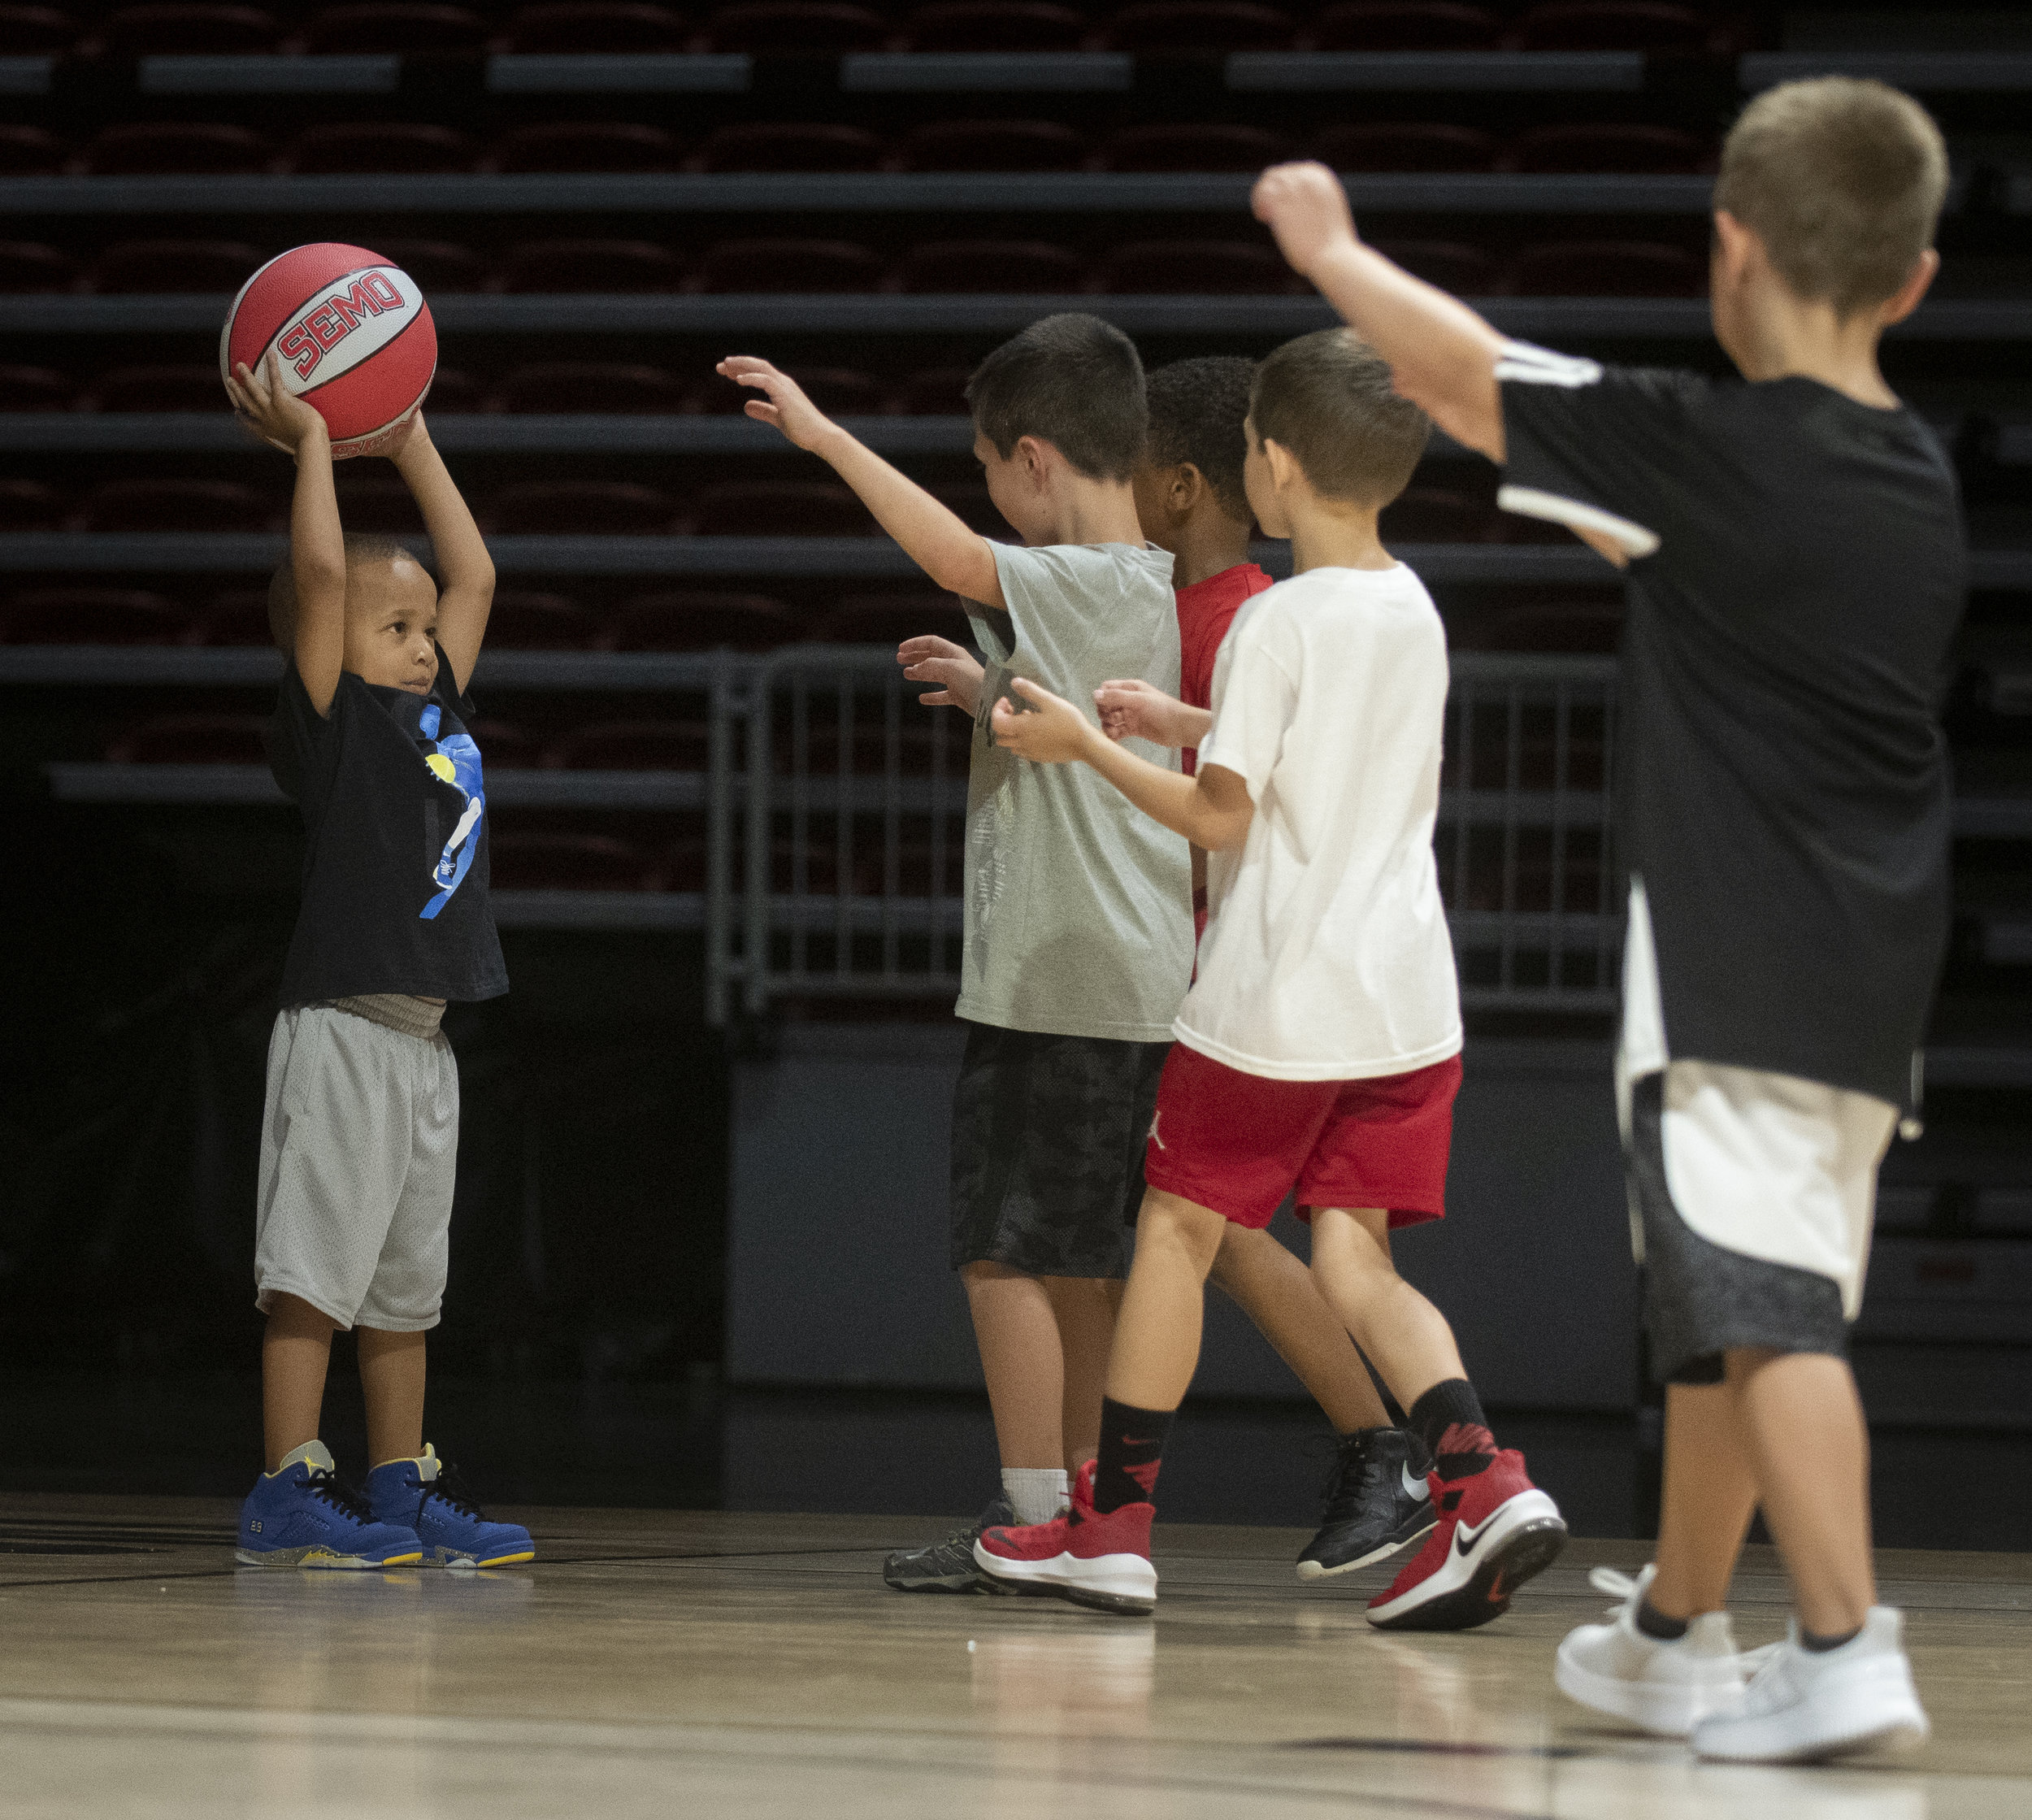 Kaden Pickens, 3, of Cape Girardeau, holds up the ball while practicing with other athletes during a summer camp with the Southeast Missouri State University men's basketball team Monday, June 17, 2019, at the Show Me Center in Cape Girardeau. Jacob Wiegand | Southeast Missourian